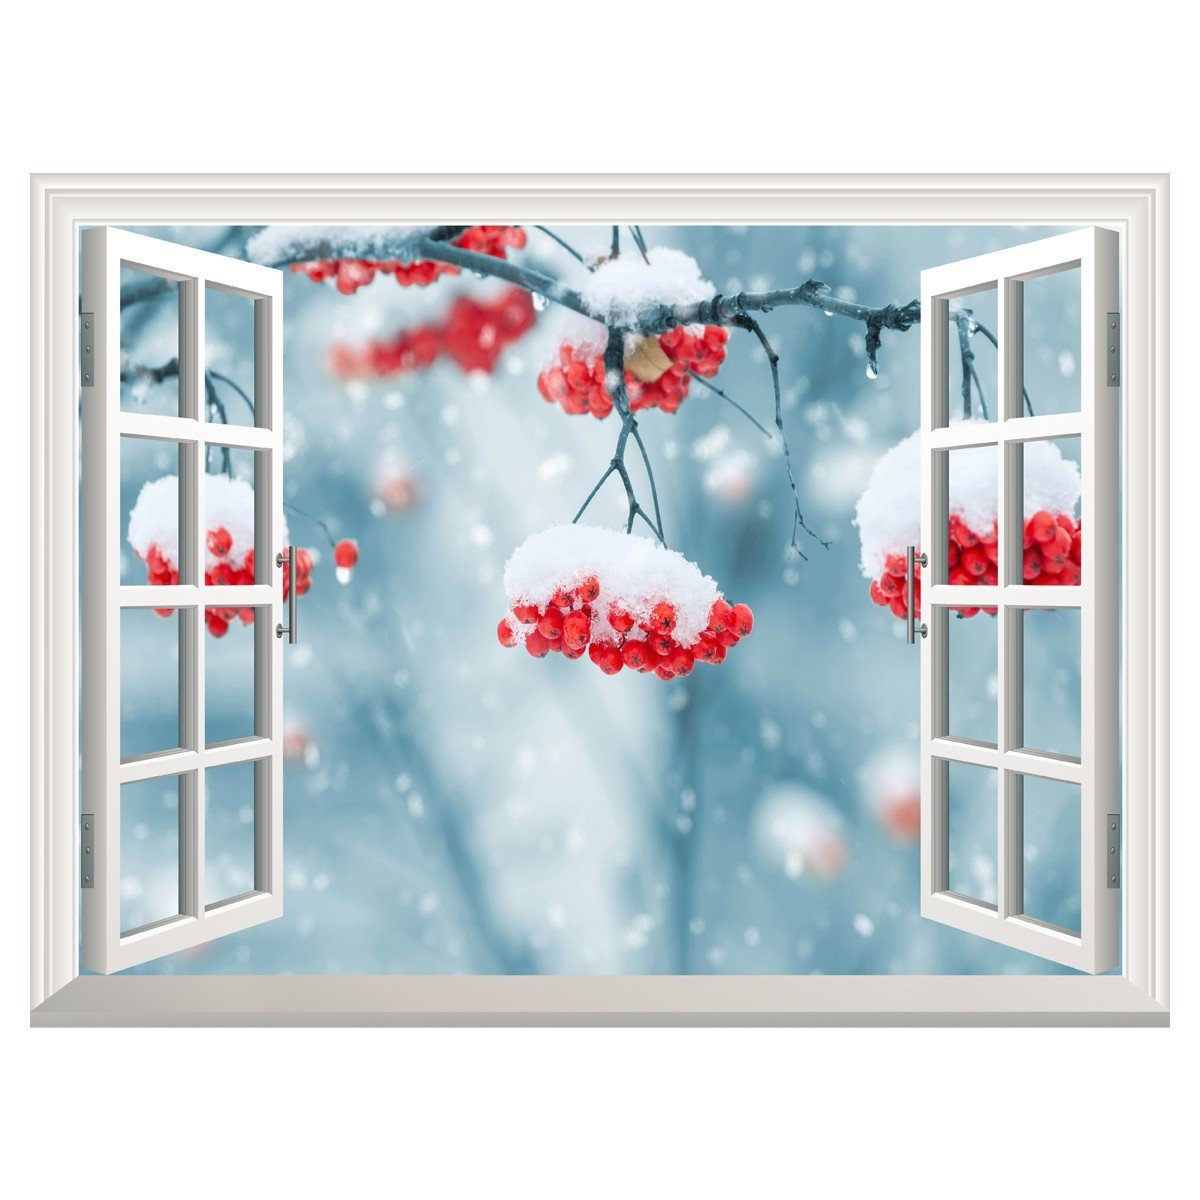 RAIN QUEEN 3D Self-Adhesive Removable Wall Murals Waterproof Winter Snow Window View Landscape Wall Sticker Home Wall Poster 24'' 32'' Snow Flower